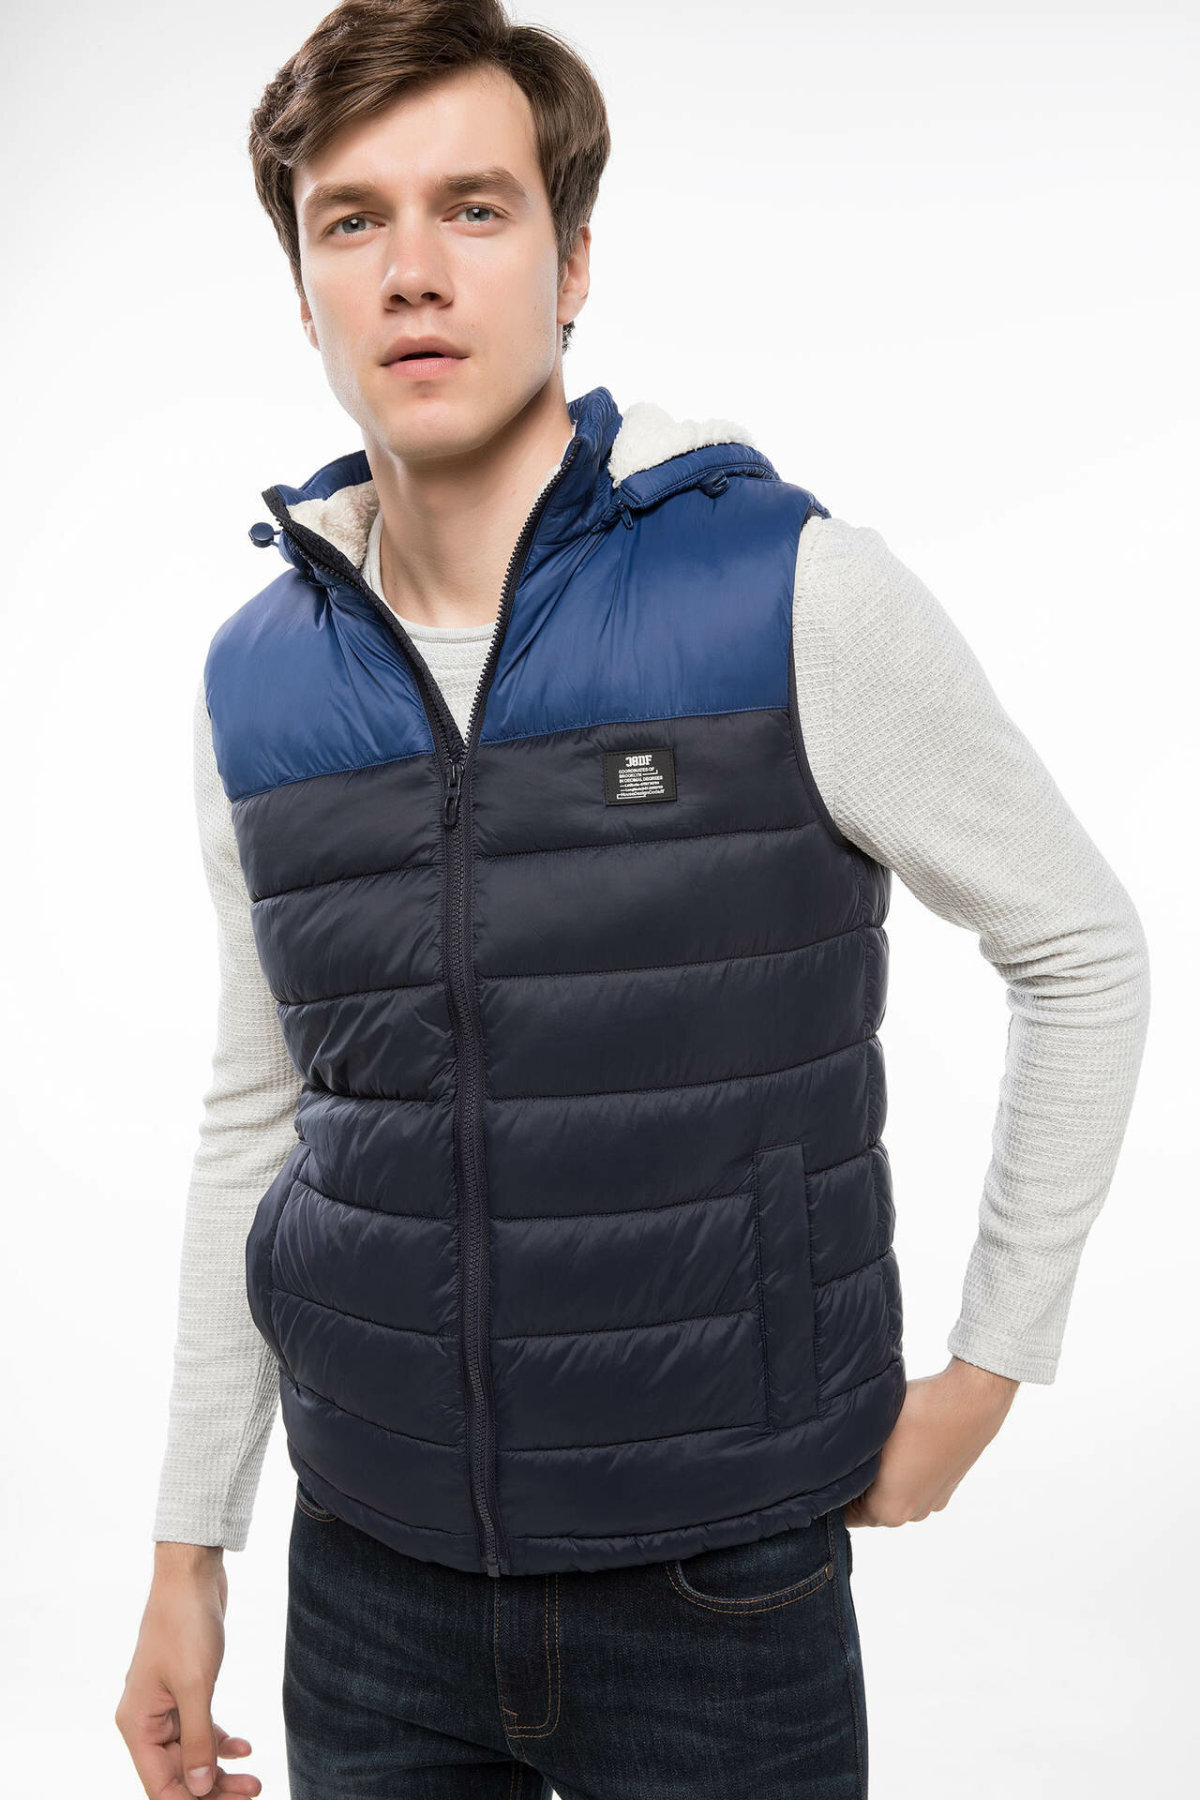 DeFacto Casual Hooded Thicken Man Vest Zipper Striped Patchwork Waistcoat Male High Quality Warm Vest Mens - I9113AZ18WN